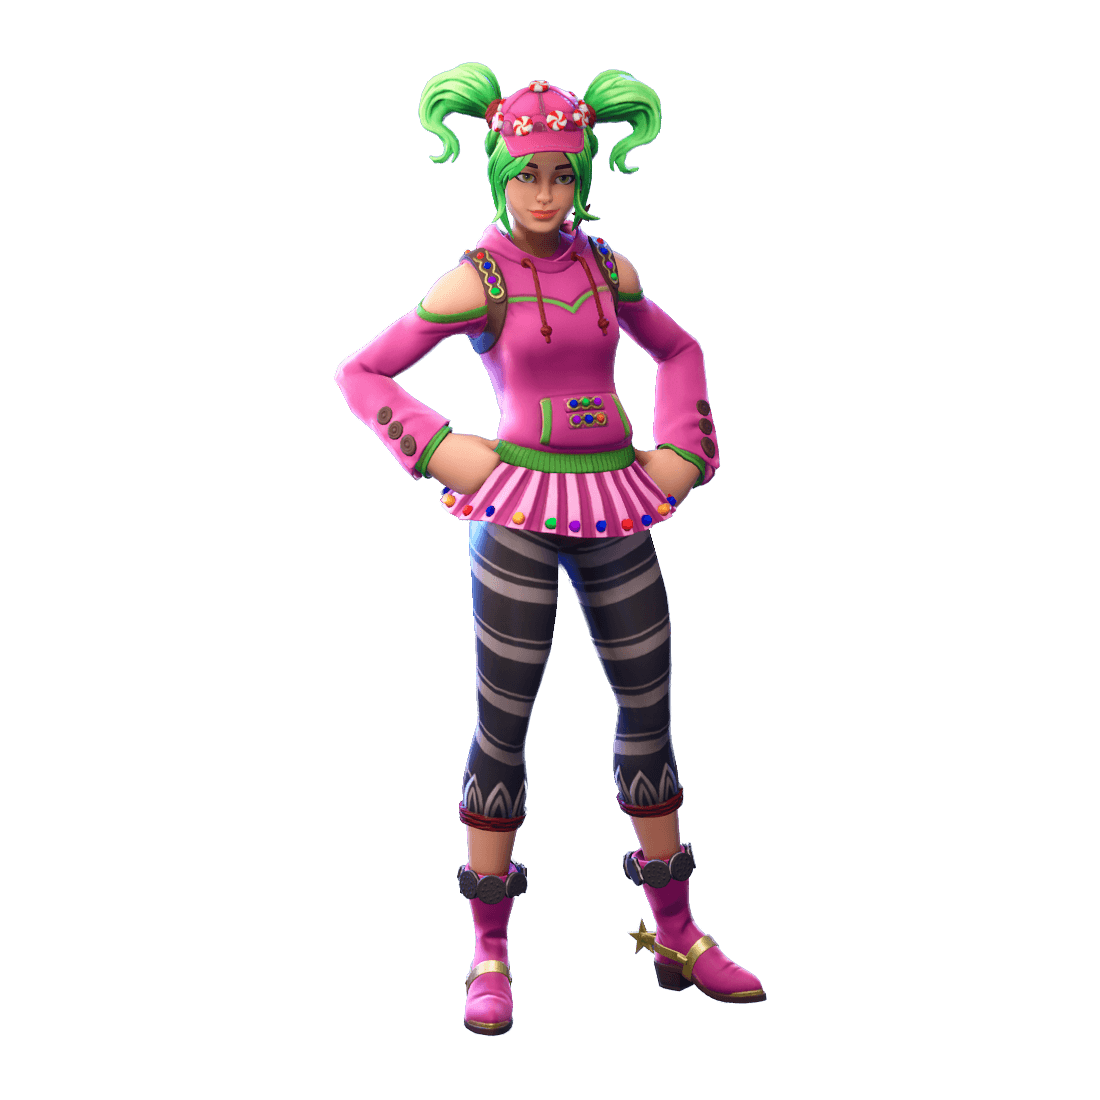 Fortnite Zoey | Outfits - Fortnite Skins